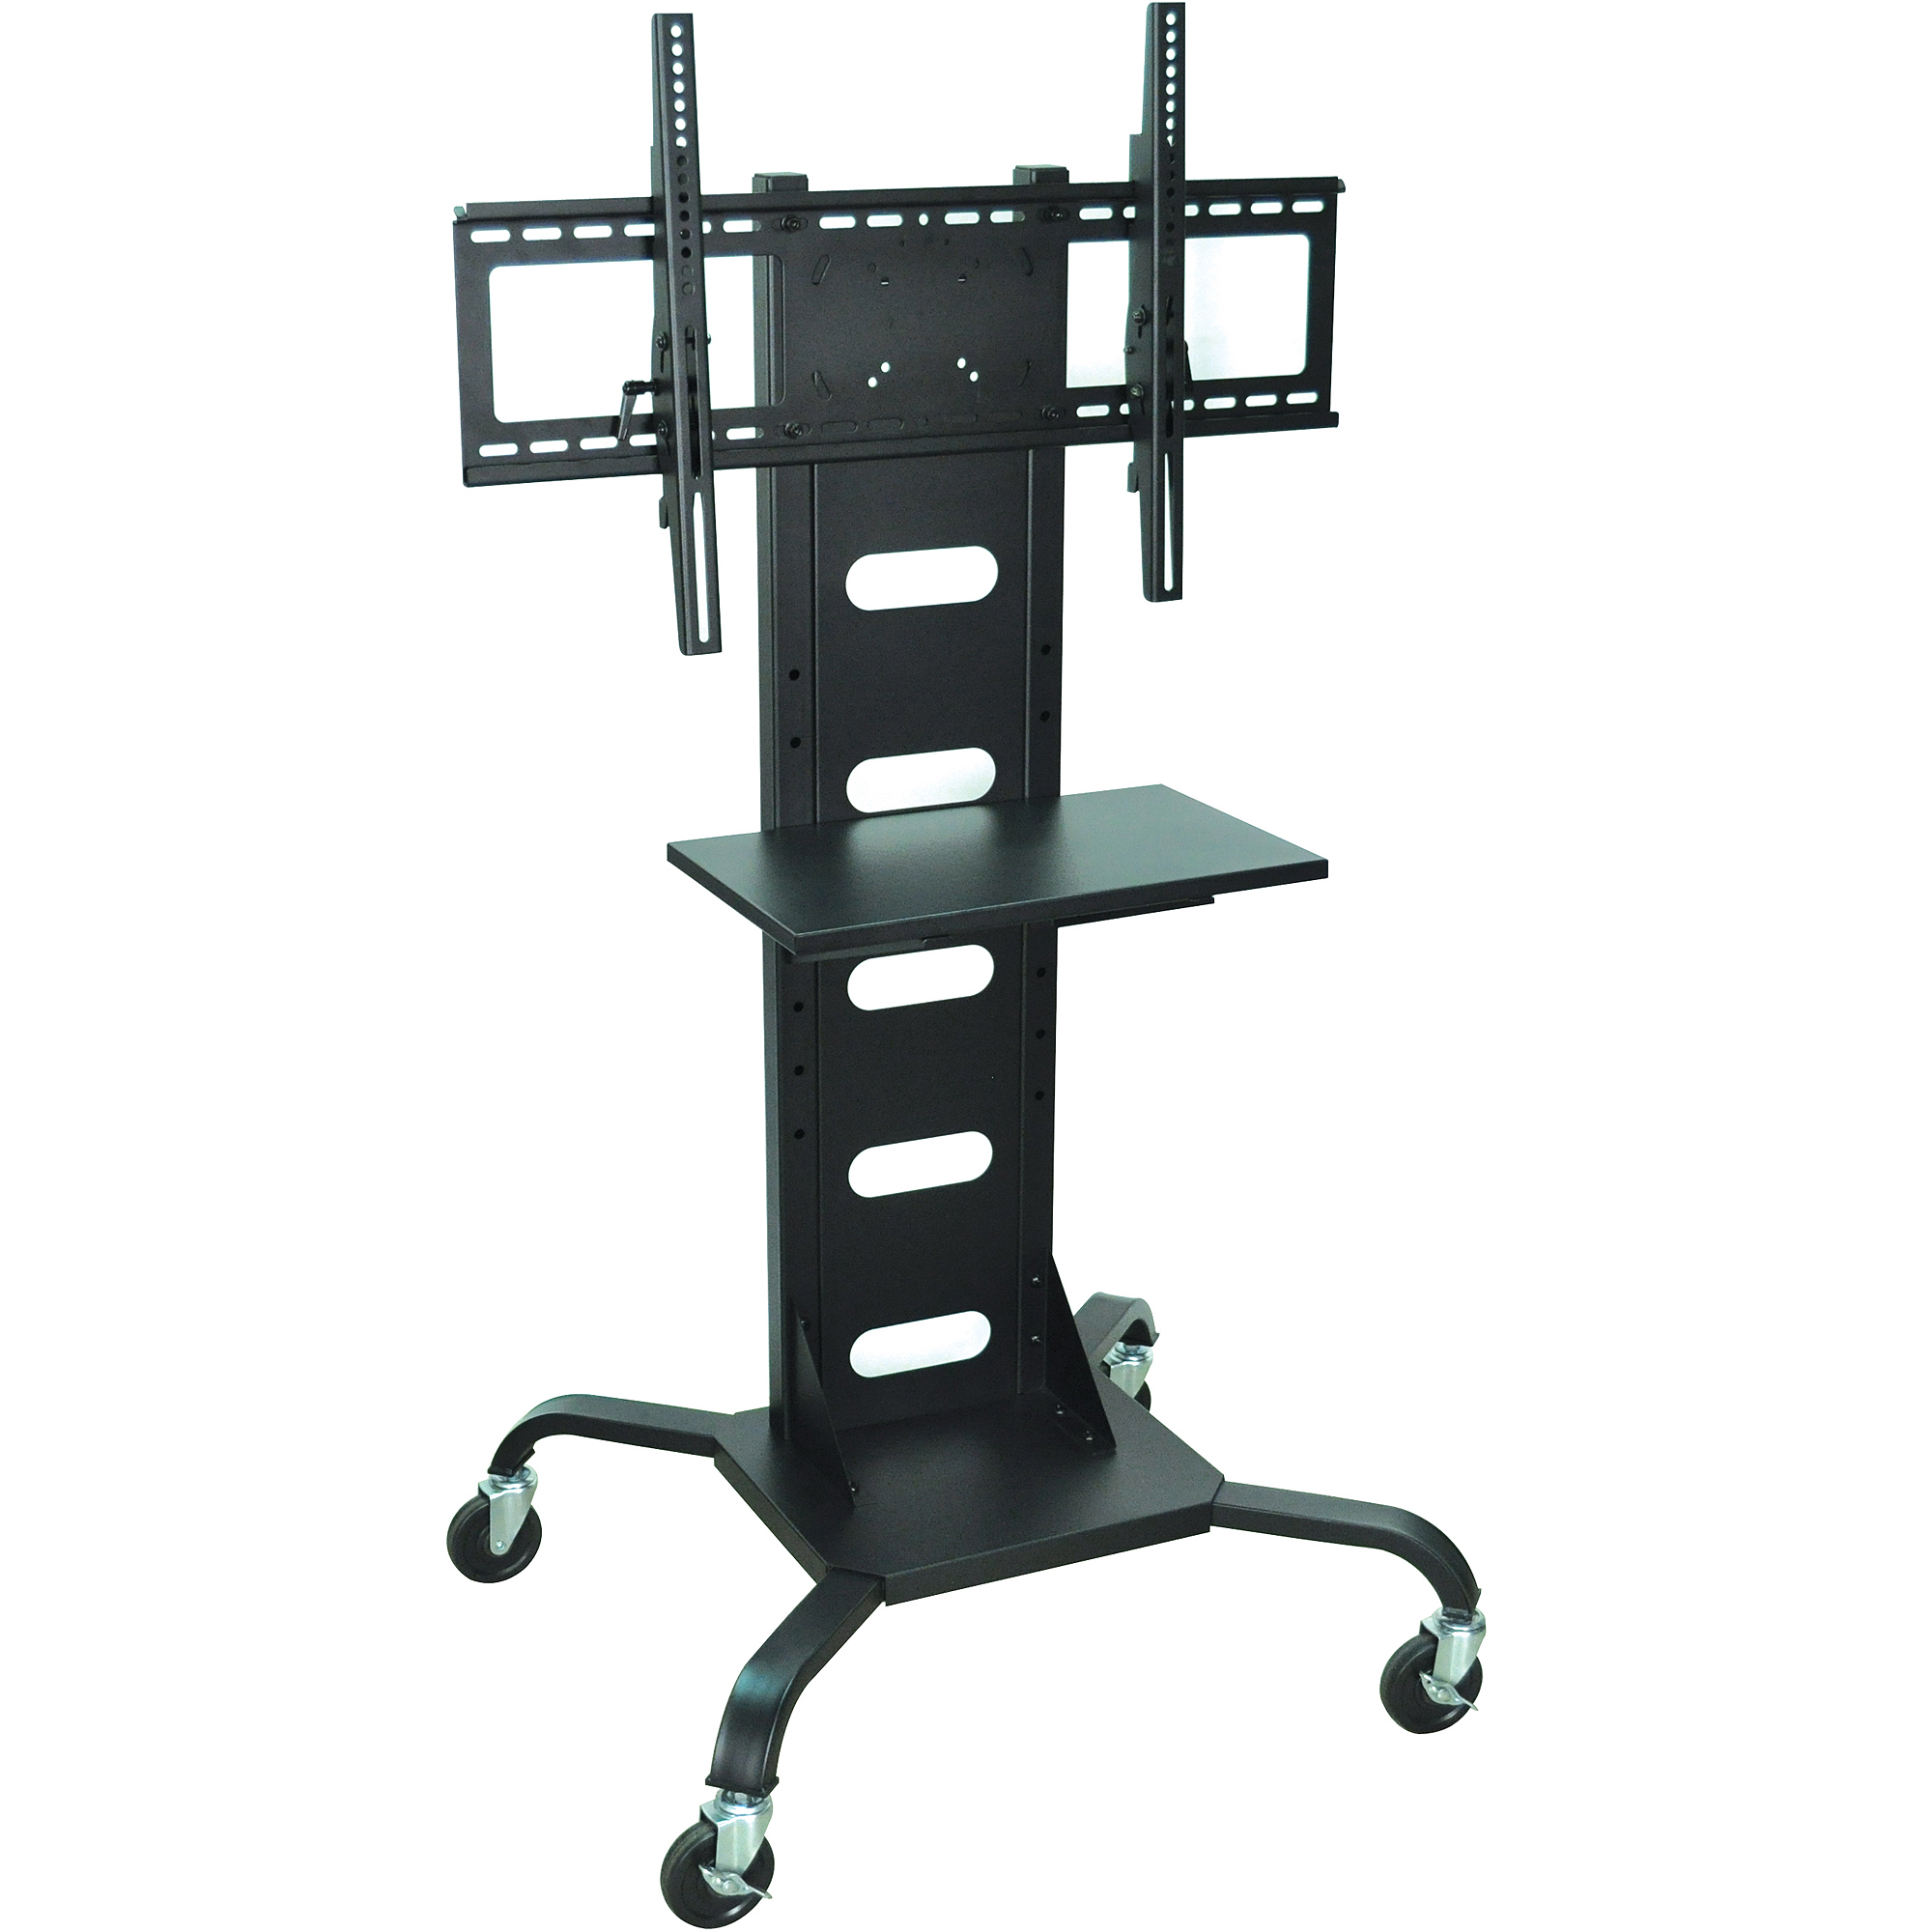 H. Wilson Mobile Flat Panel TV Stand and Mount, Black